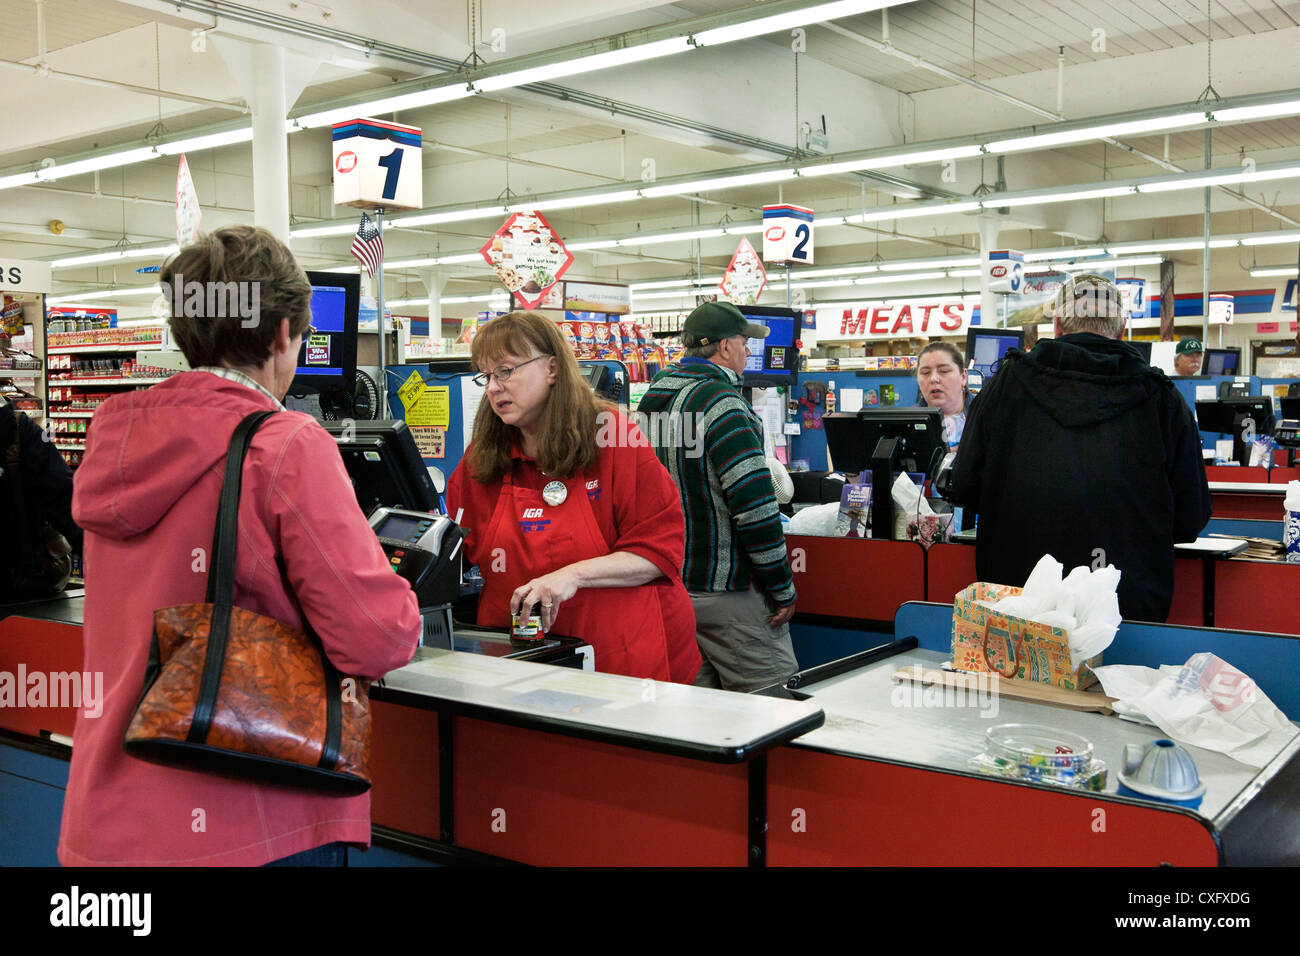 red white & blue themed check out lines at Sid's Supermarket grocery in small town of Long Beach Washington - Stock Image